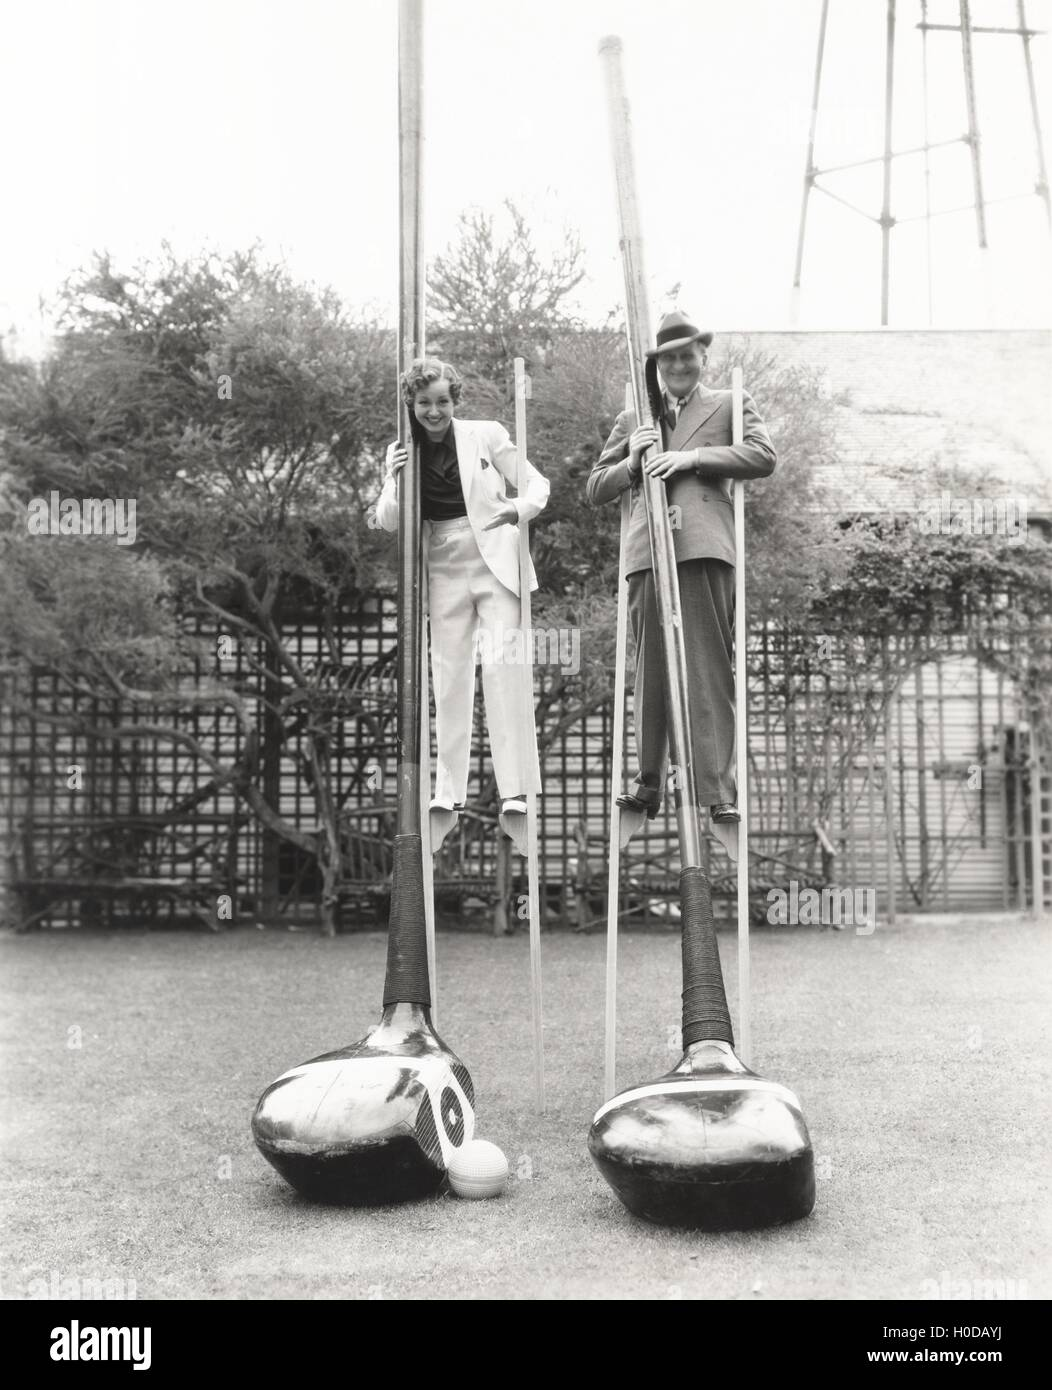 Man and woman on stilts holding giant golf clubs - Stock Image